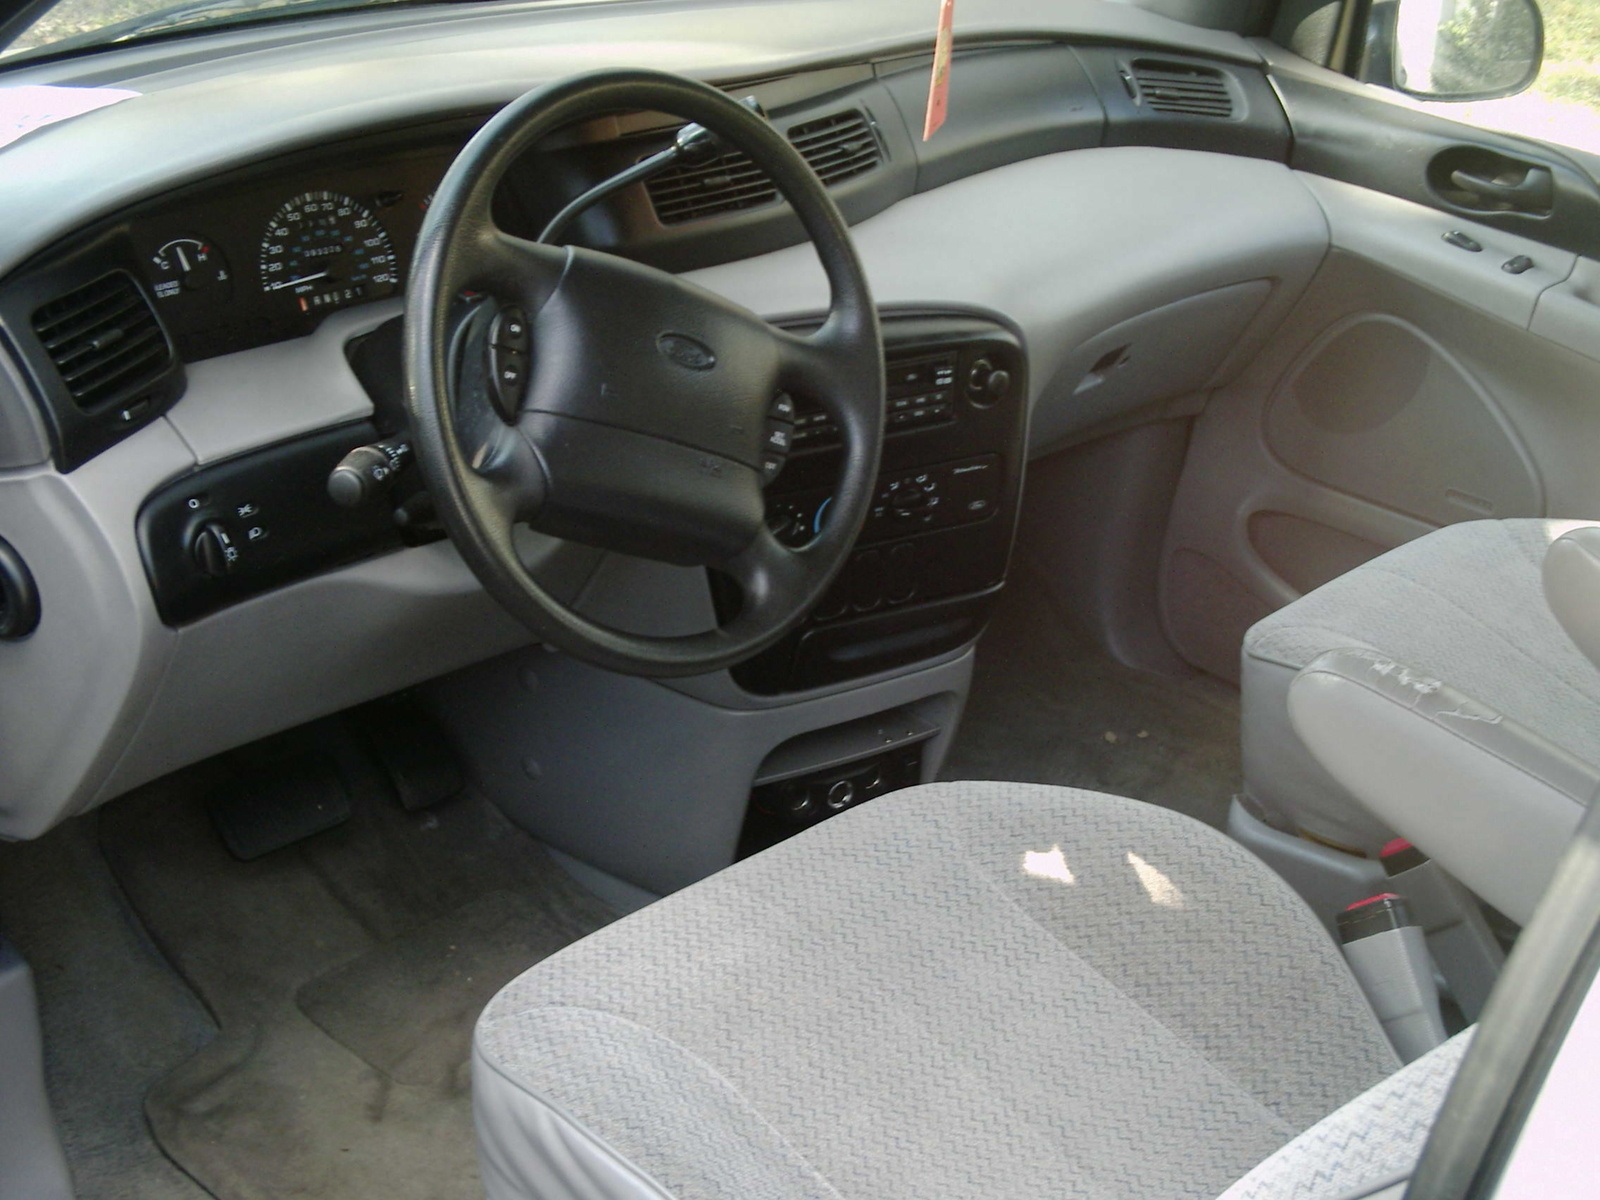 Ford Windstar interior #2